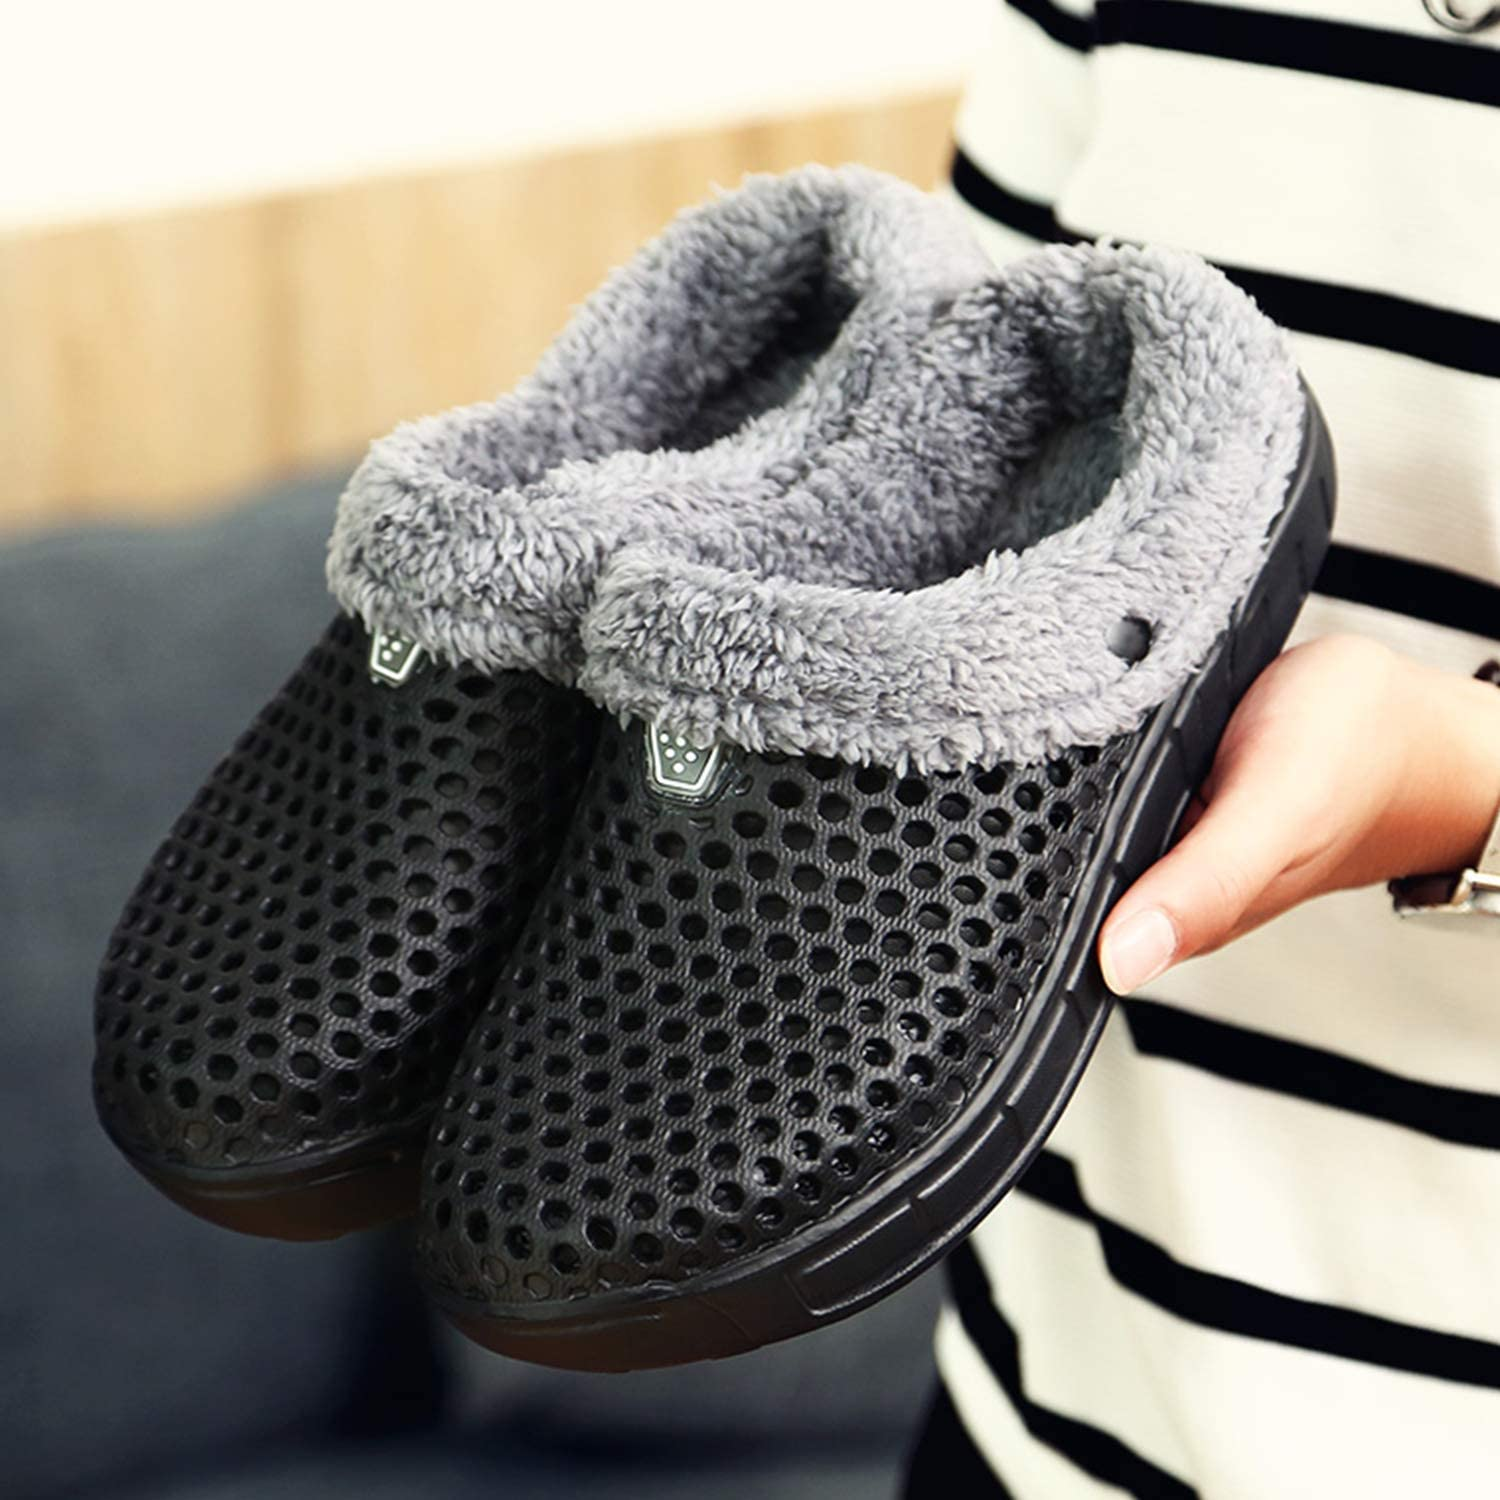 PHILDA Mens Womens Lined Clog Breathable Mesh Lining Indoor Outdoor Walking Garden Clogs Winter Slippers